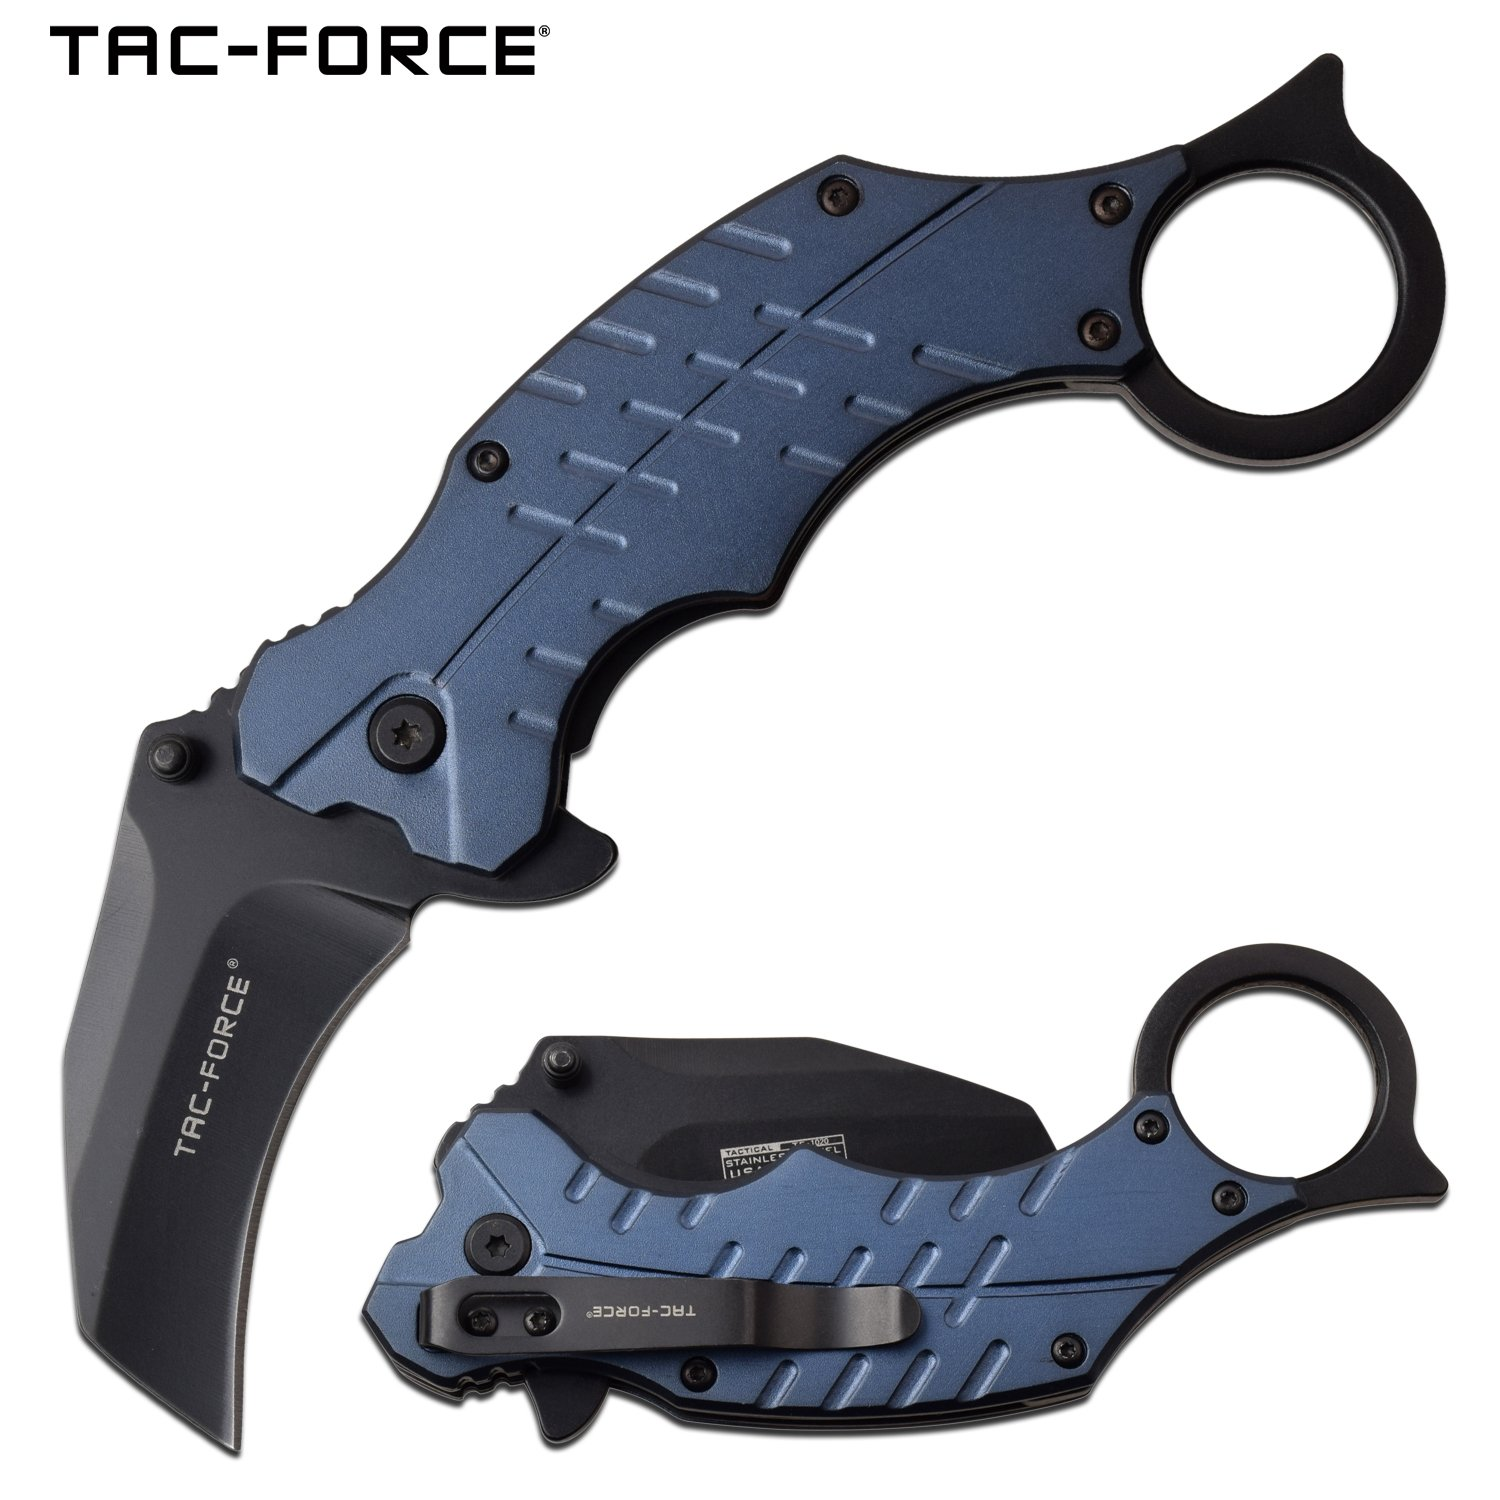 "Spring-Assist Folding Knife Tac-Force  Karambit 2.5"" Black Blade Tactical - Blue"